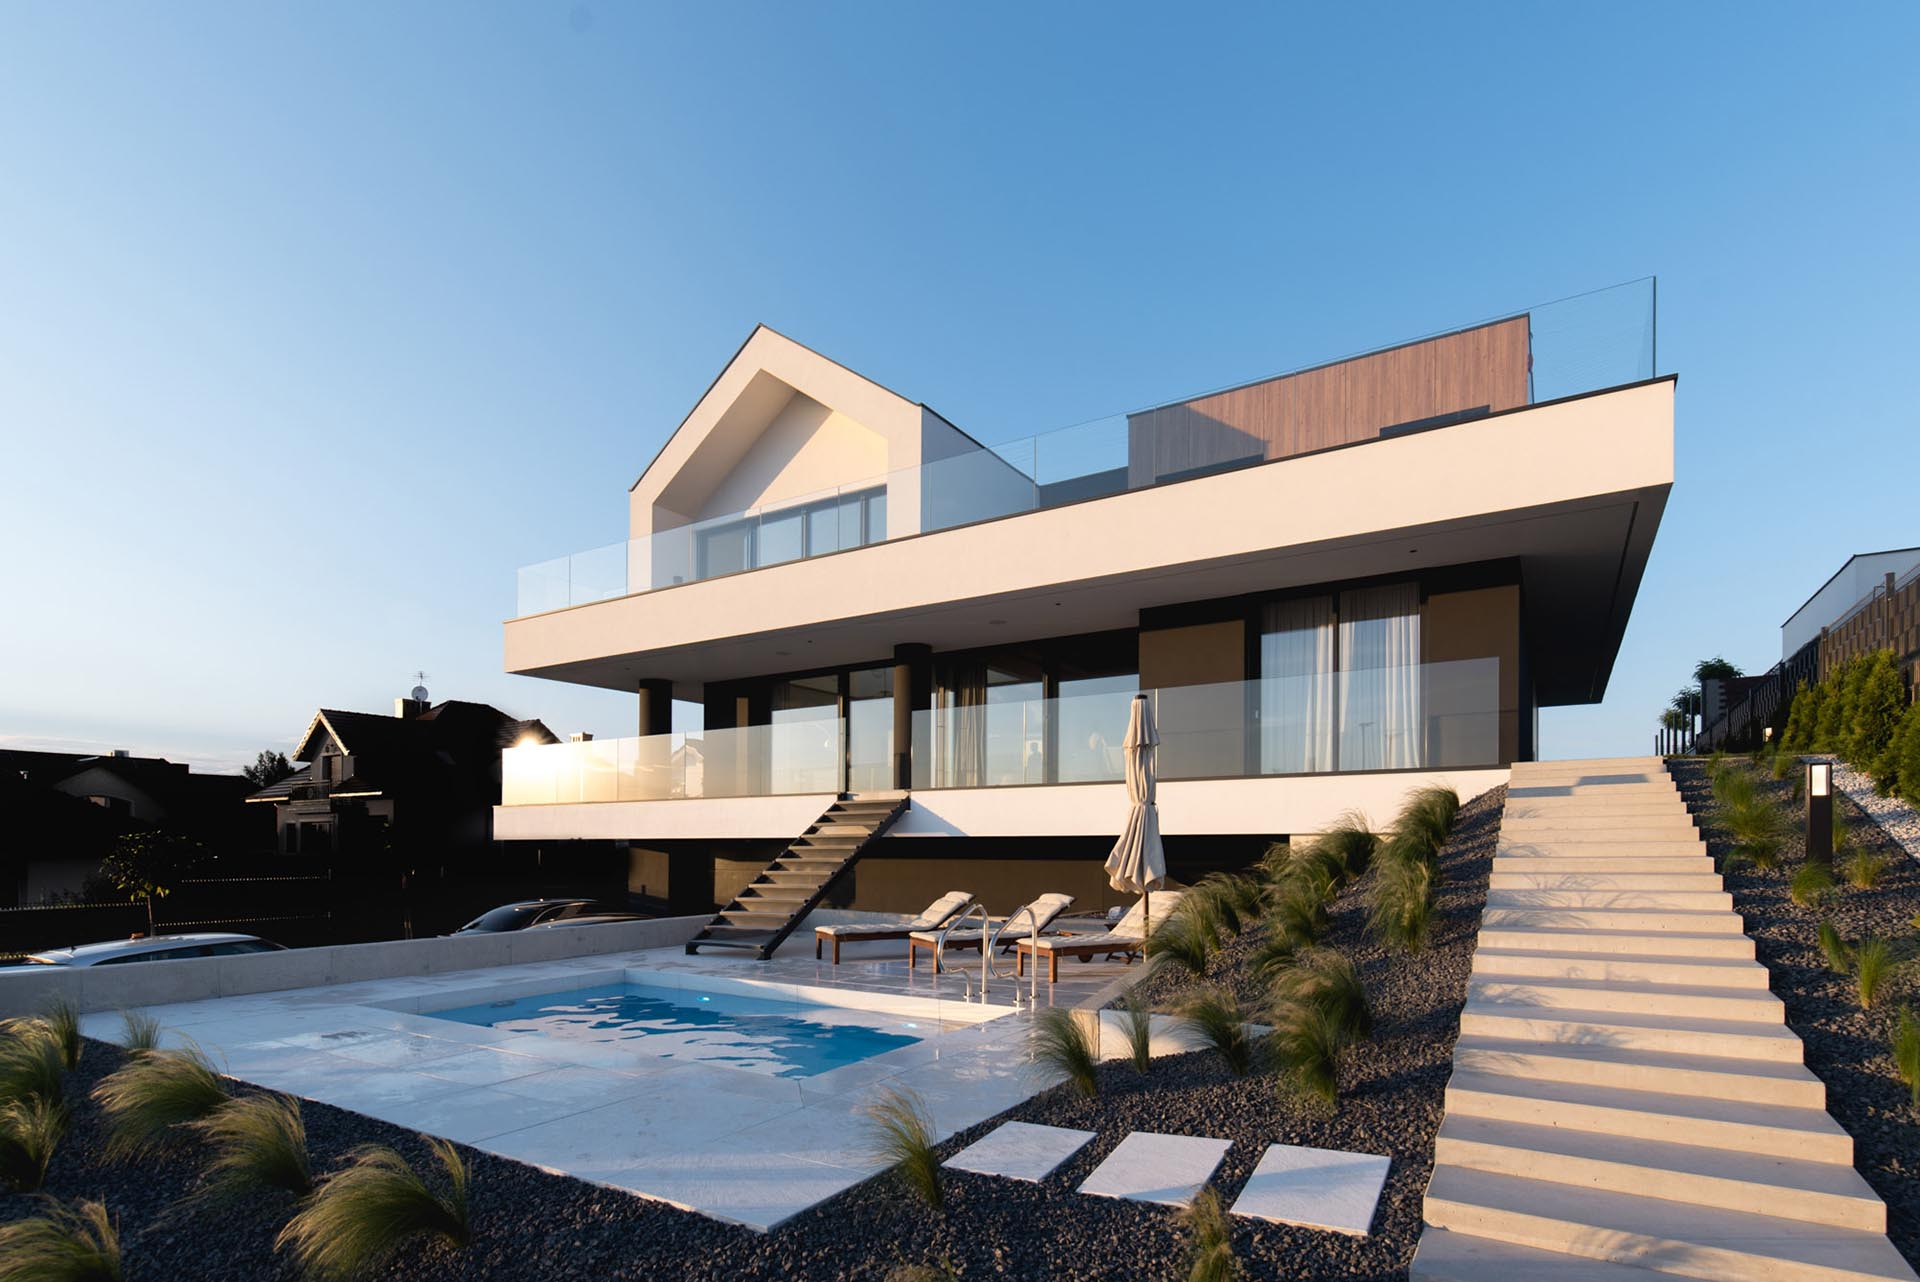 A modern home with a swimming pool and surrounding deck.